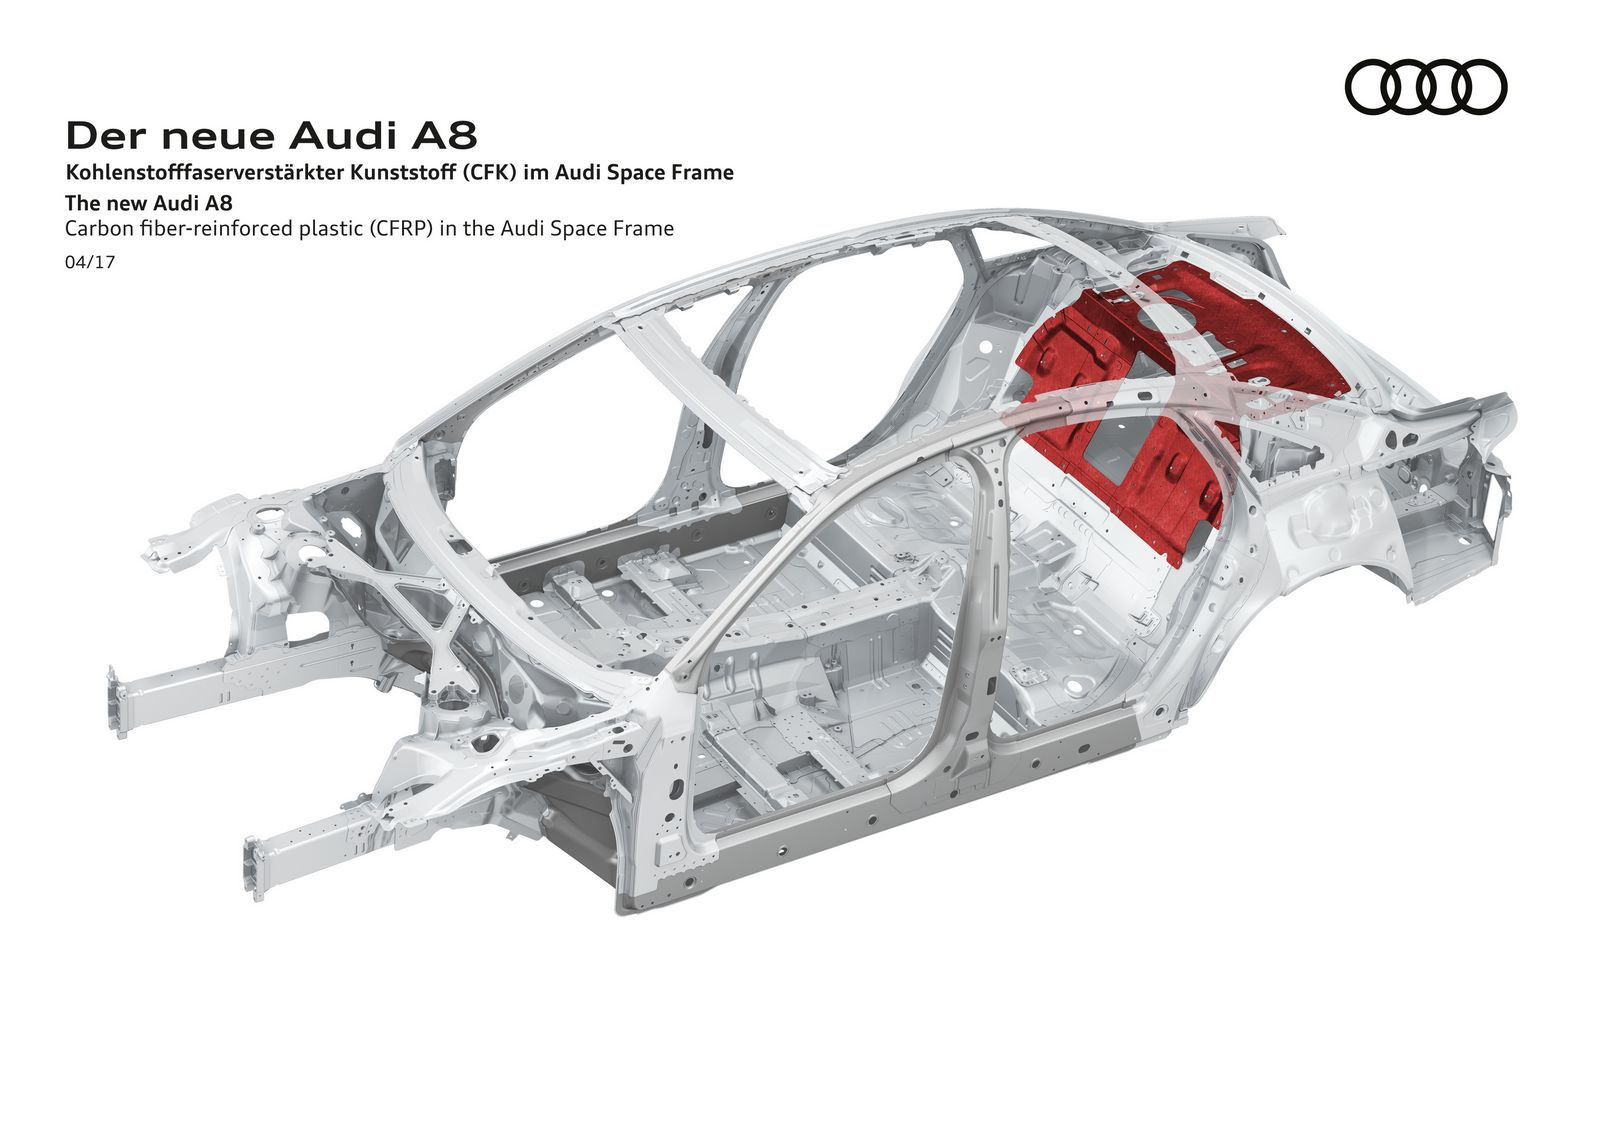 Carbon fiber-reinforced plastic (CFRP) in the Audi Space Frame